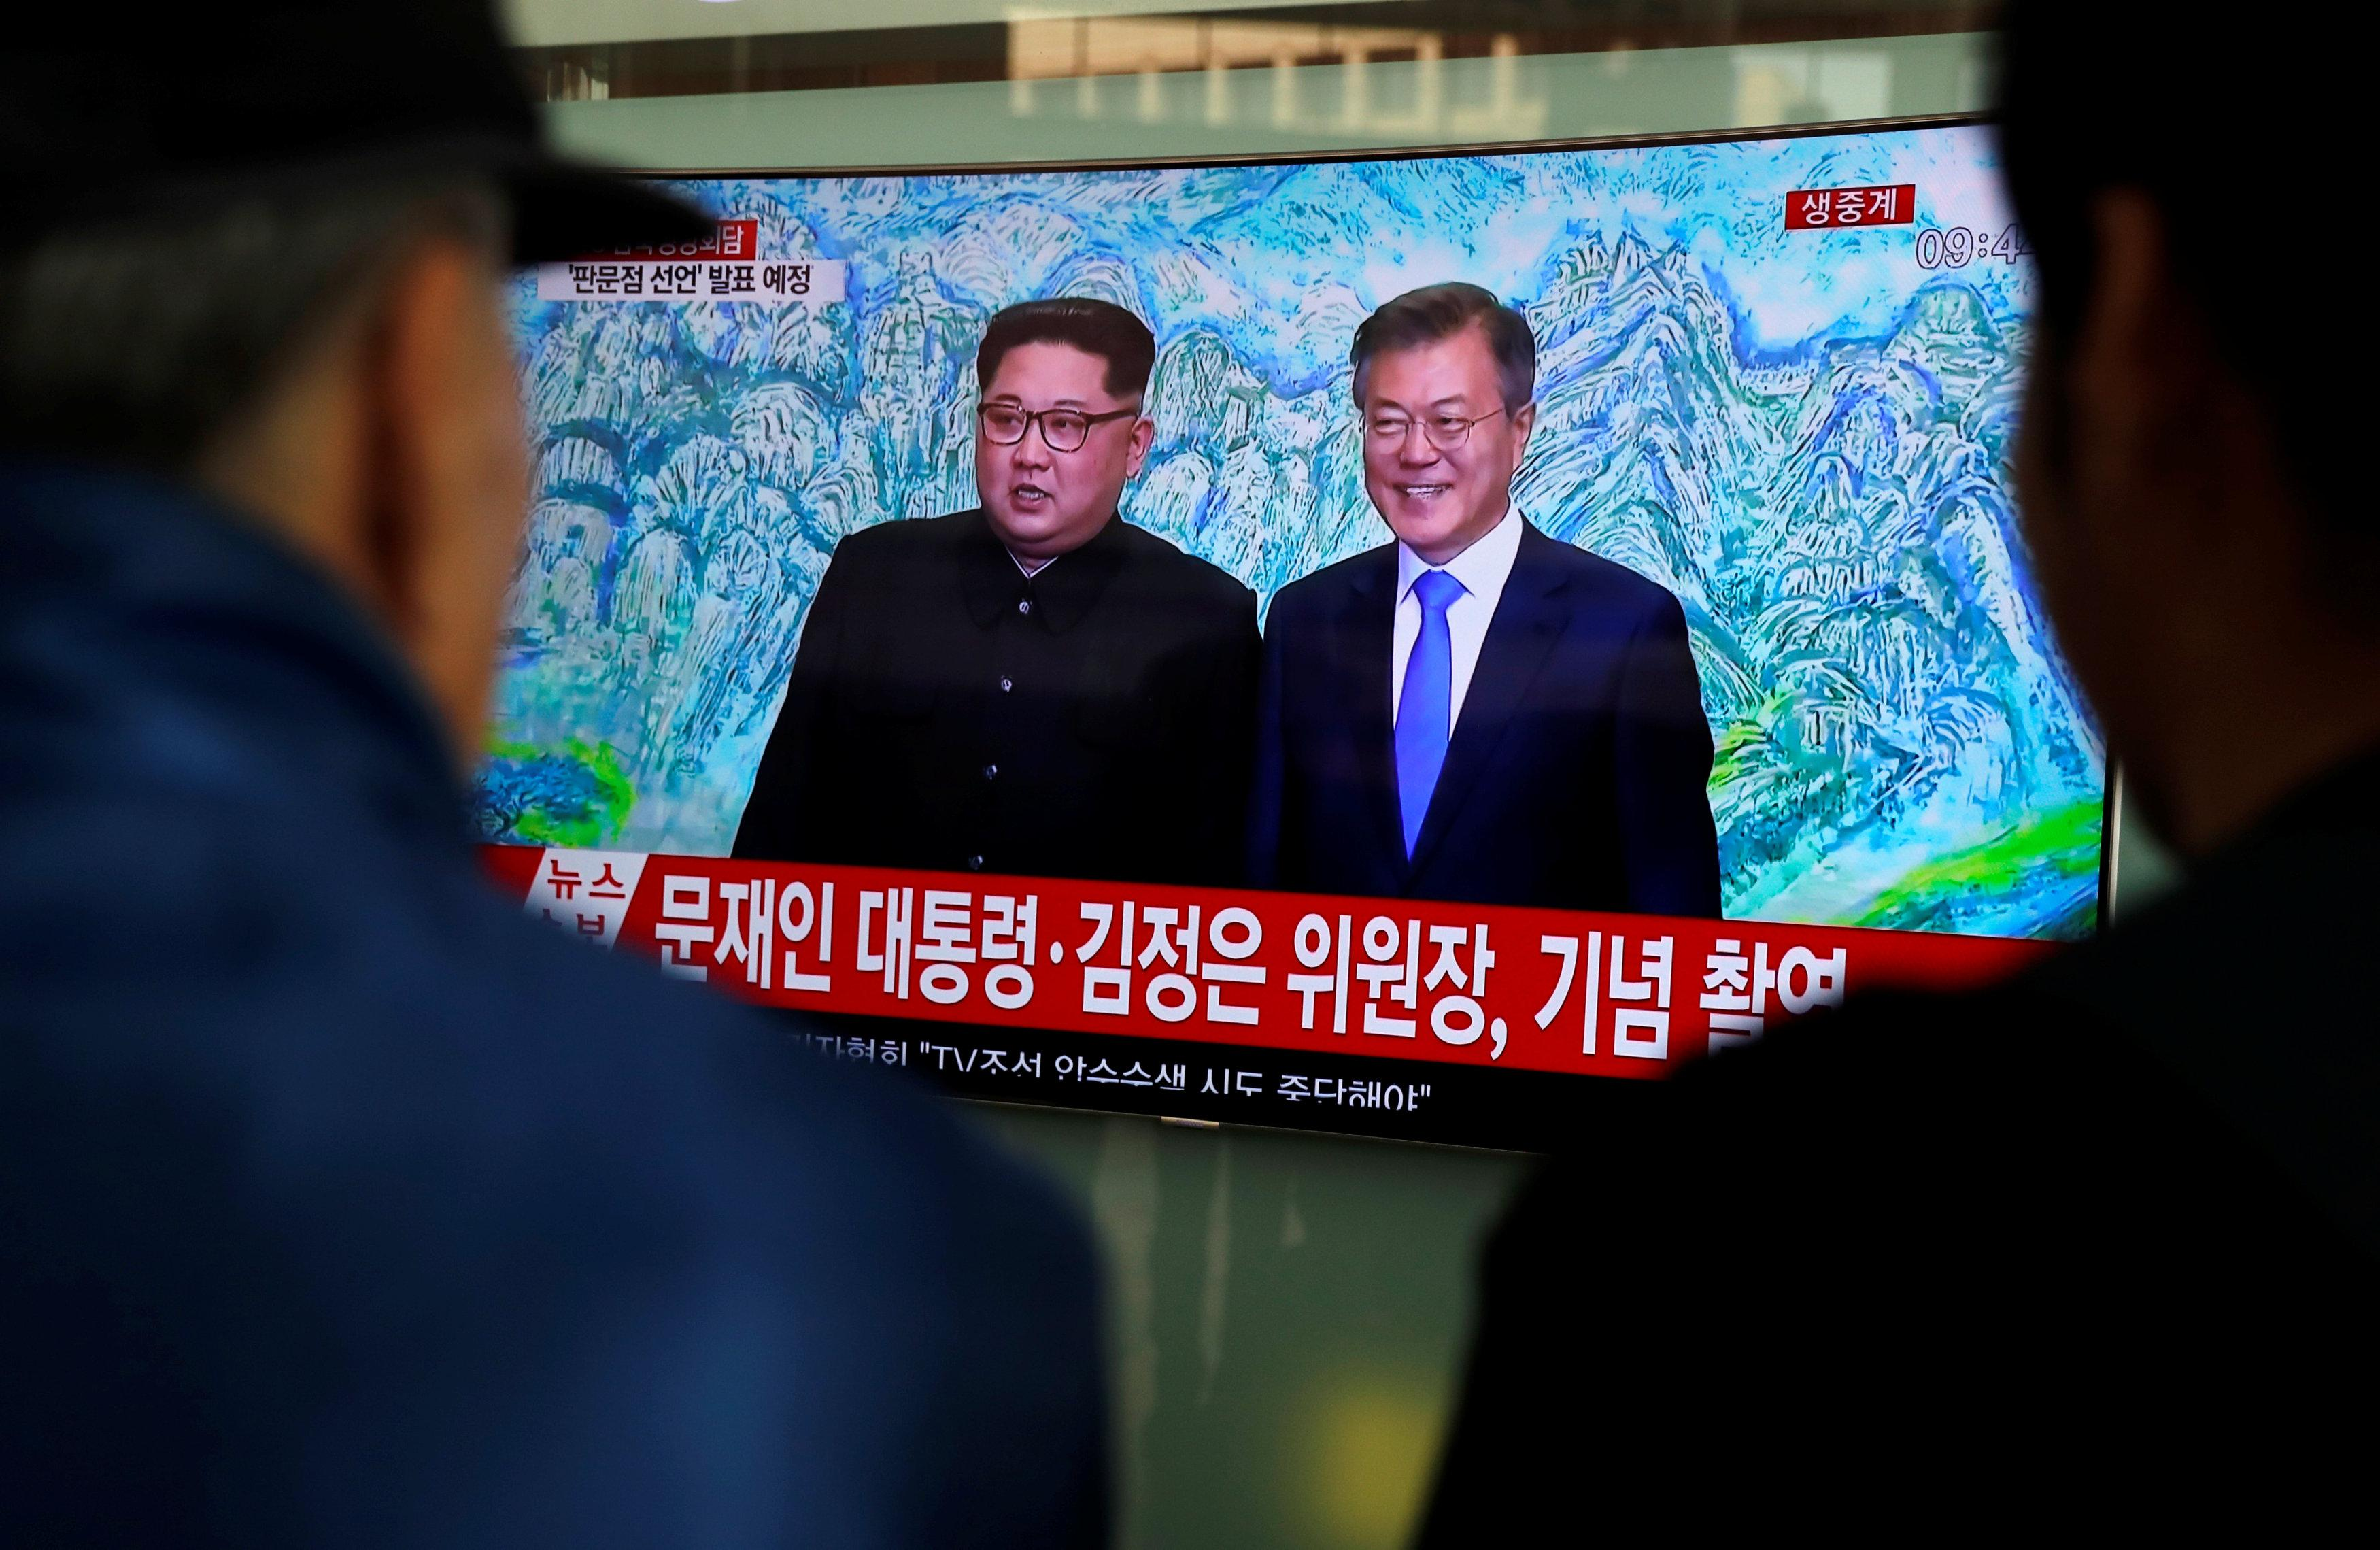 U.S. hopeful Korea talks will achieve progress toward peace